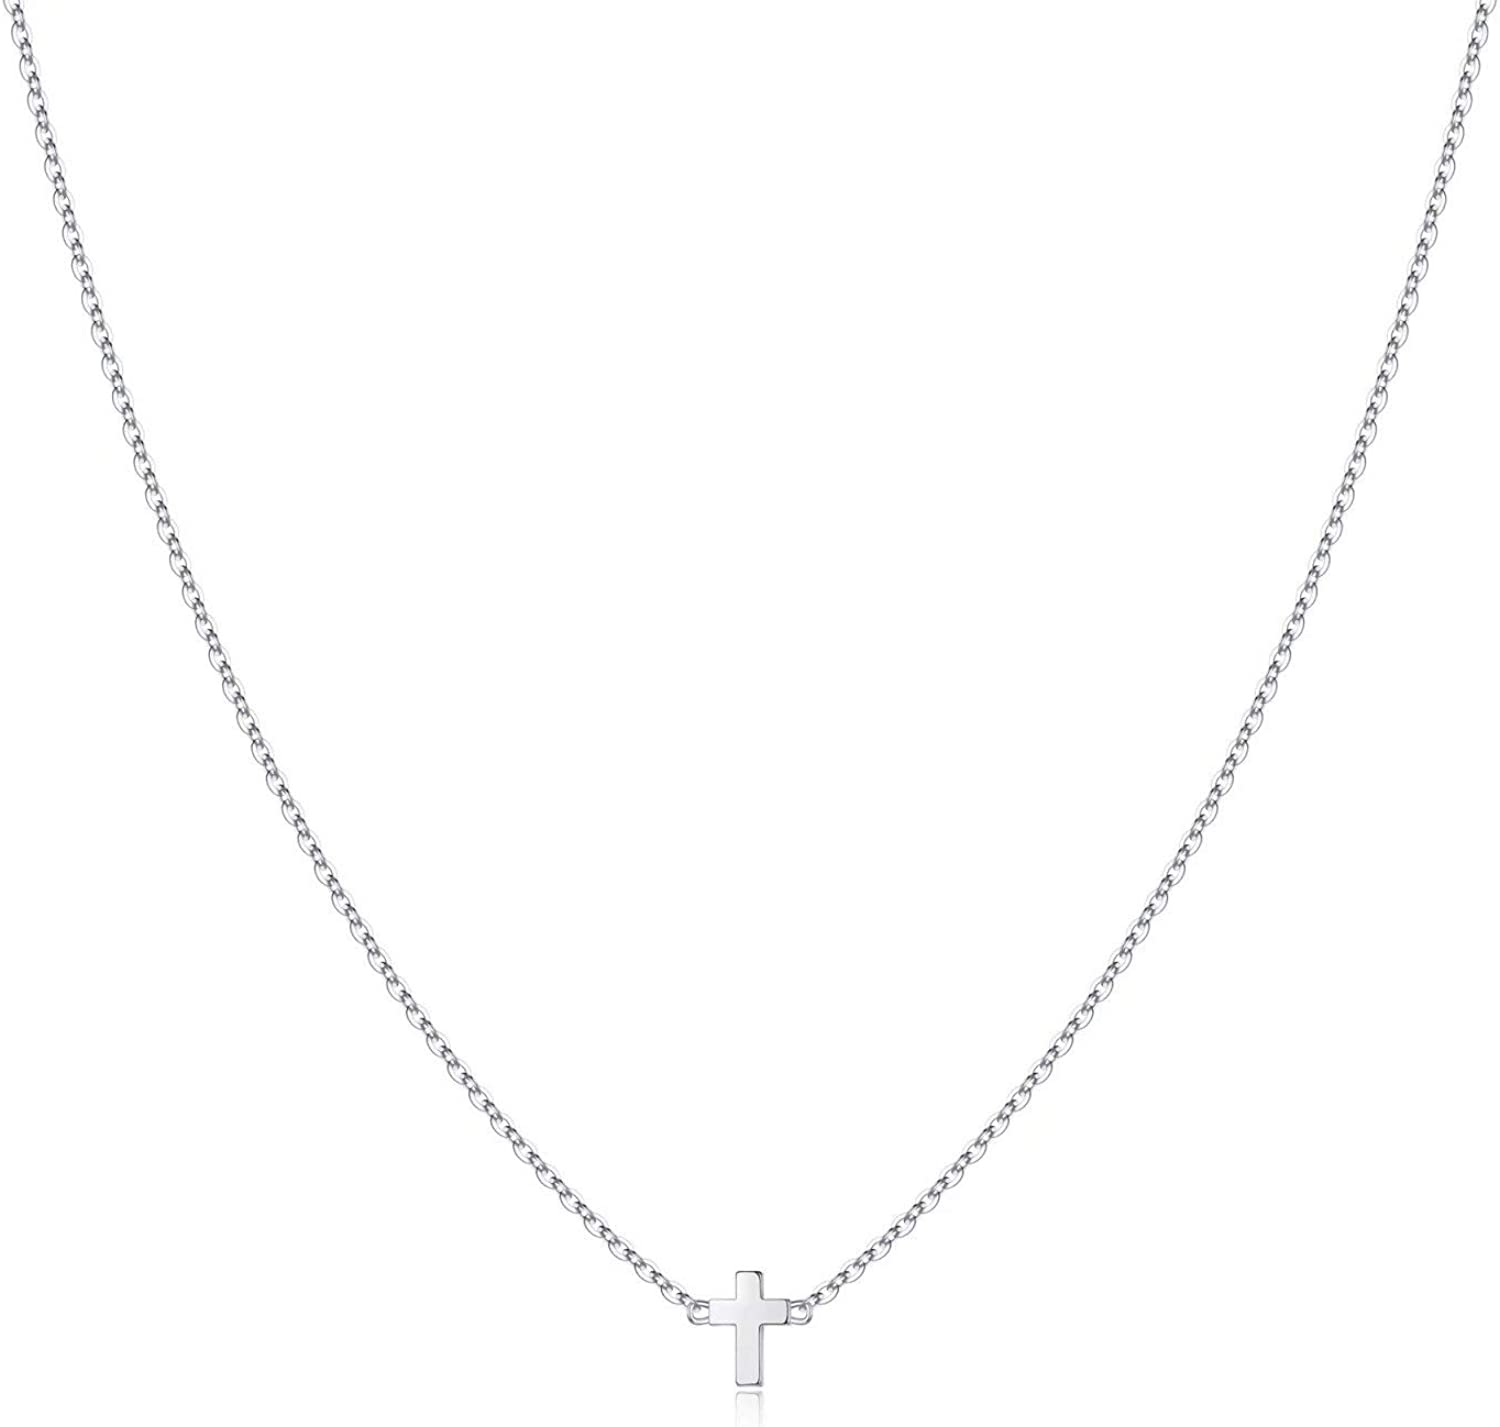 Turandoss Cross Necklace for Women - 14K Gold Filled Small Cross Pendant Simple Sideways Cross Necklace for Women Jewelry Gifts 14 16 Inches Chain Gold/White God/Rose Gold